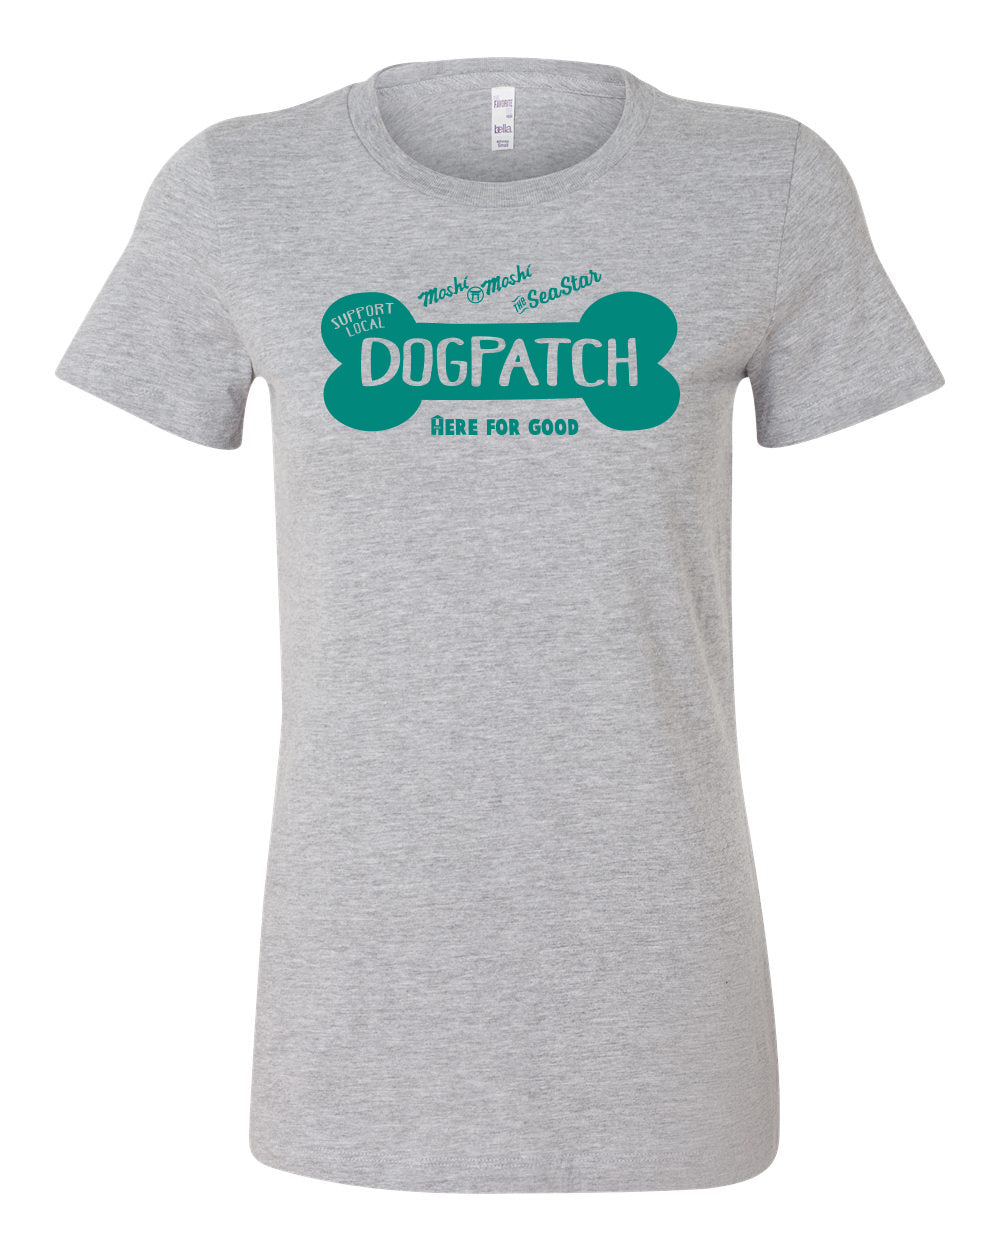 Dogpatch Moshi Moshi / Sea Star Women's Tee